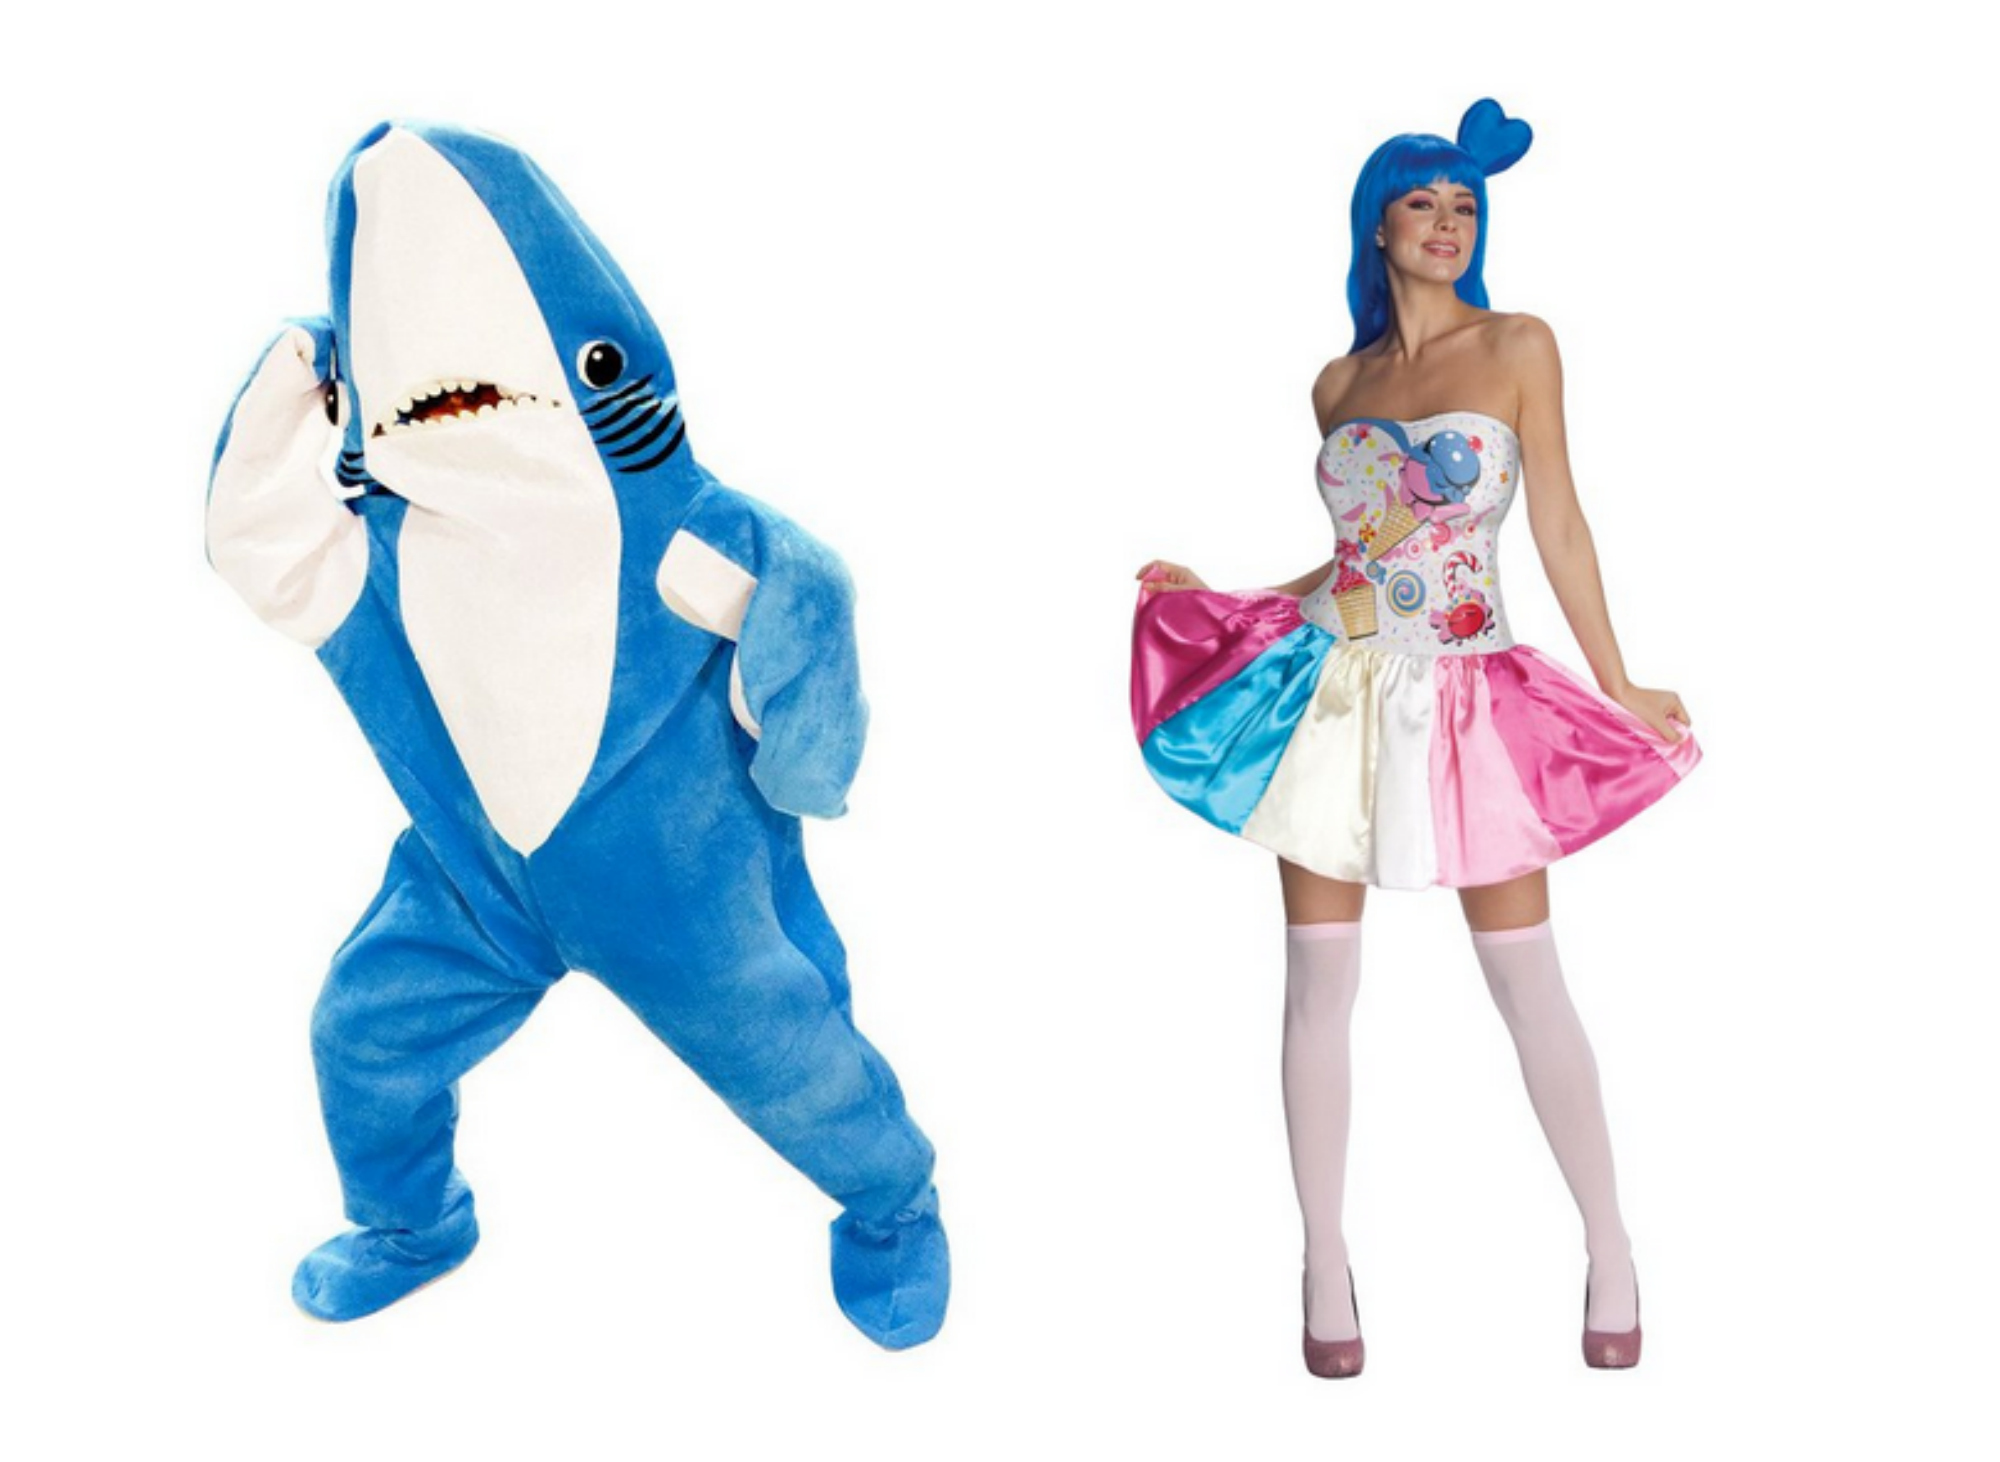 Katy Perry left shark from Super Bowl performance costume